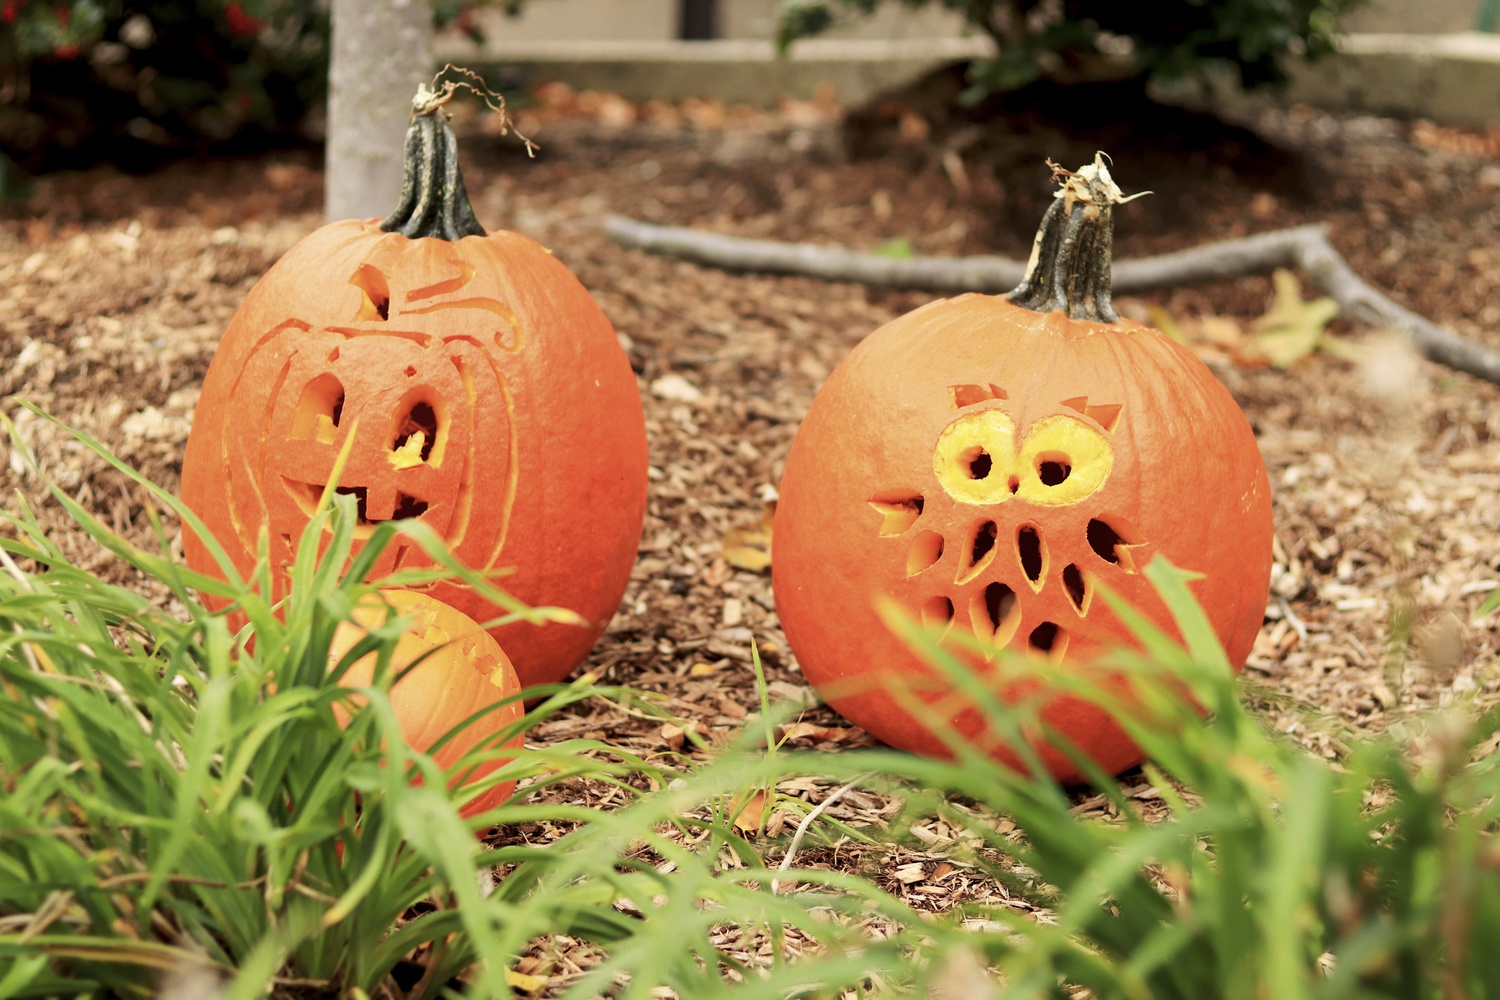 With Halloween around the corner, Harvard students decorate the Quad with carved pumpkins.